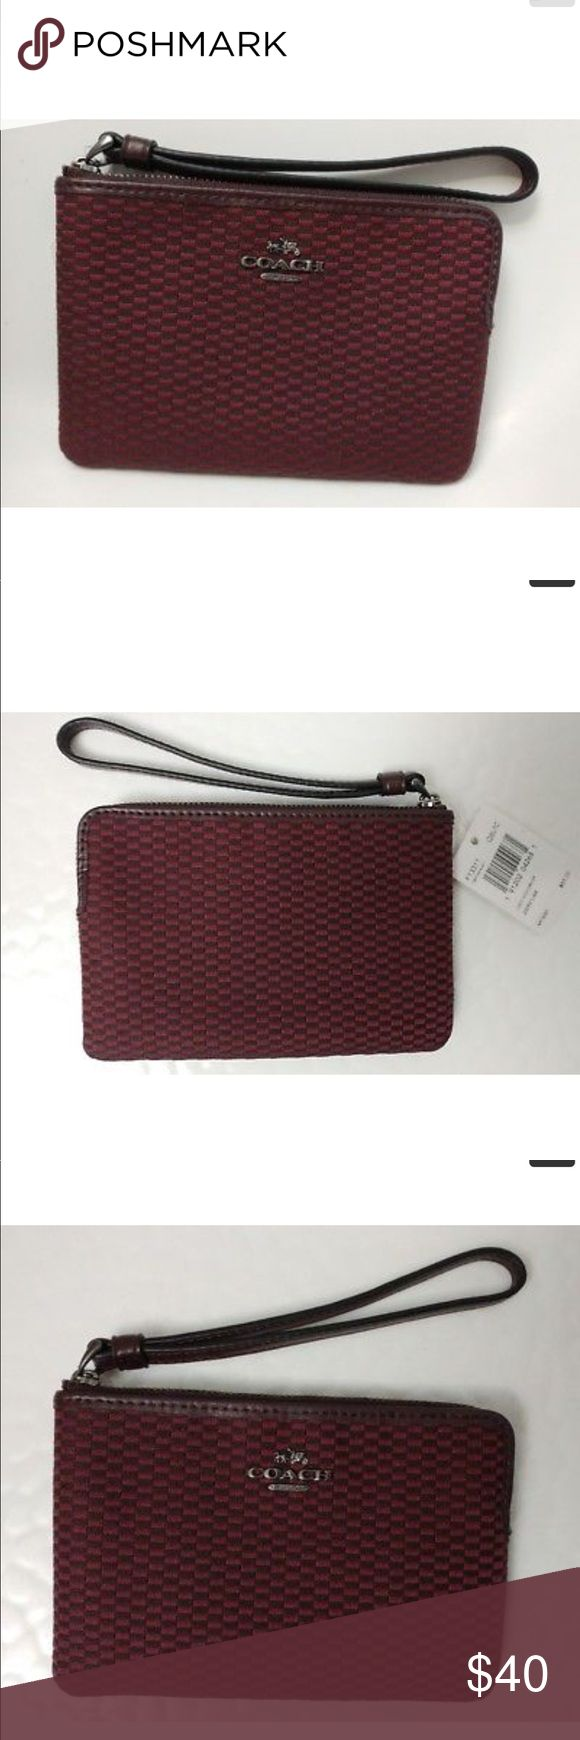 NWT Coach Corner Zip Wristlet Legacy Jacquard NWT Coach Zip Wristlet Legacy Jacquard Style F13311. Zip top closure with fabric lining. Two credit card slots. Wrist strap attached. Fits an IPhone or Android. Color black antique nickel/oxblood. Coach Bags Clutches & Wristlets